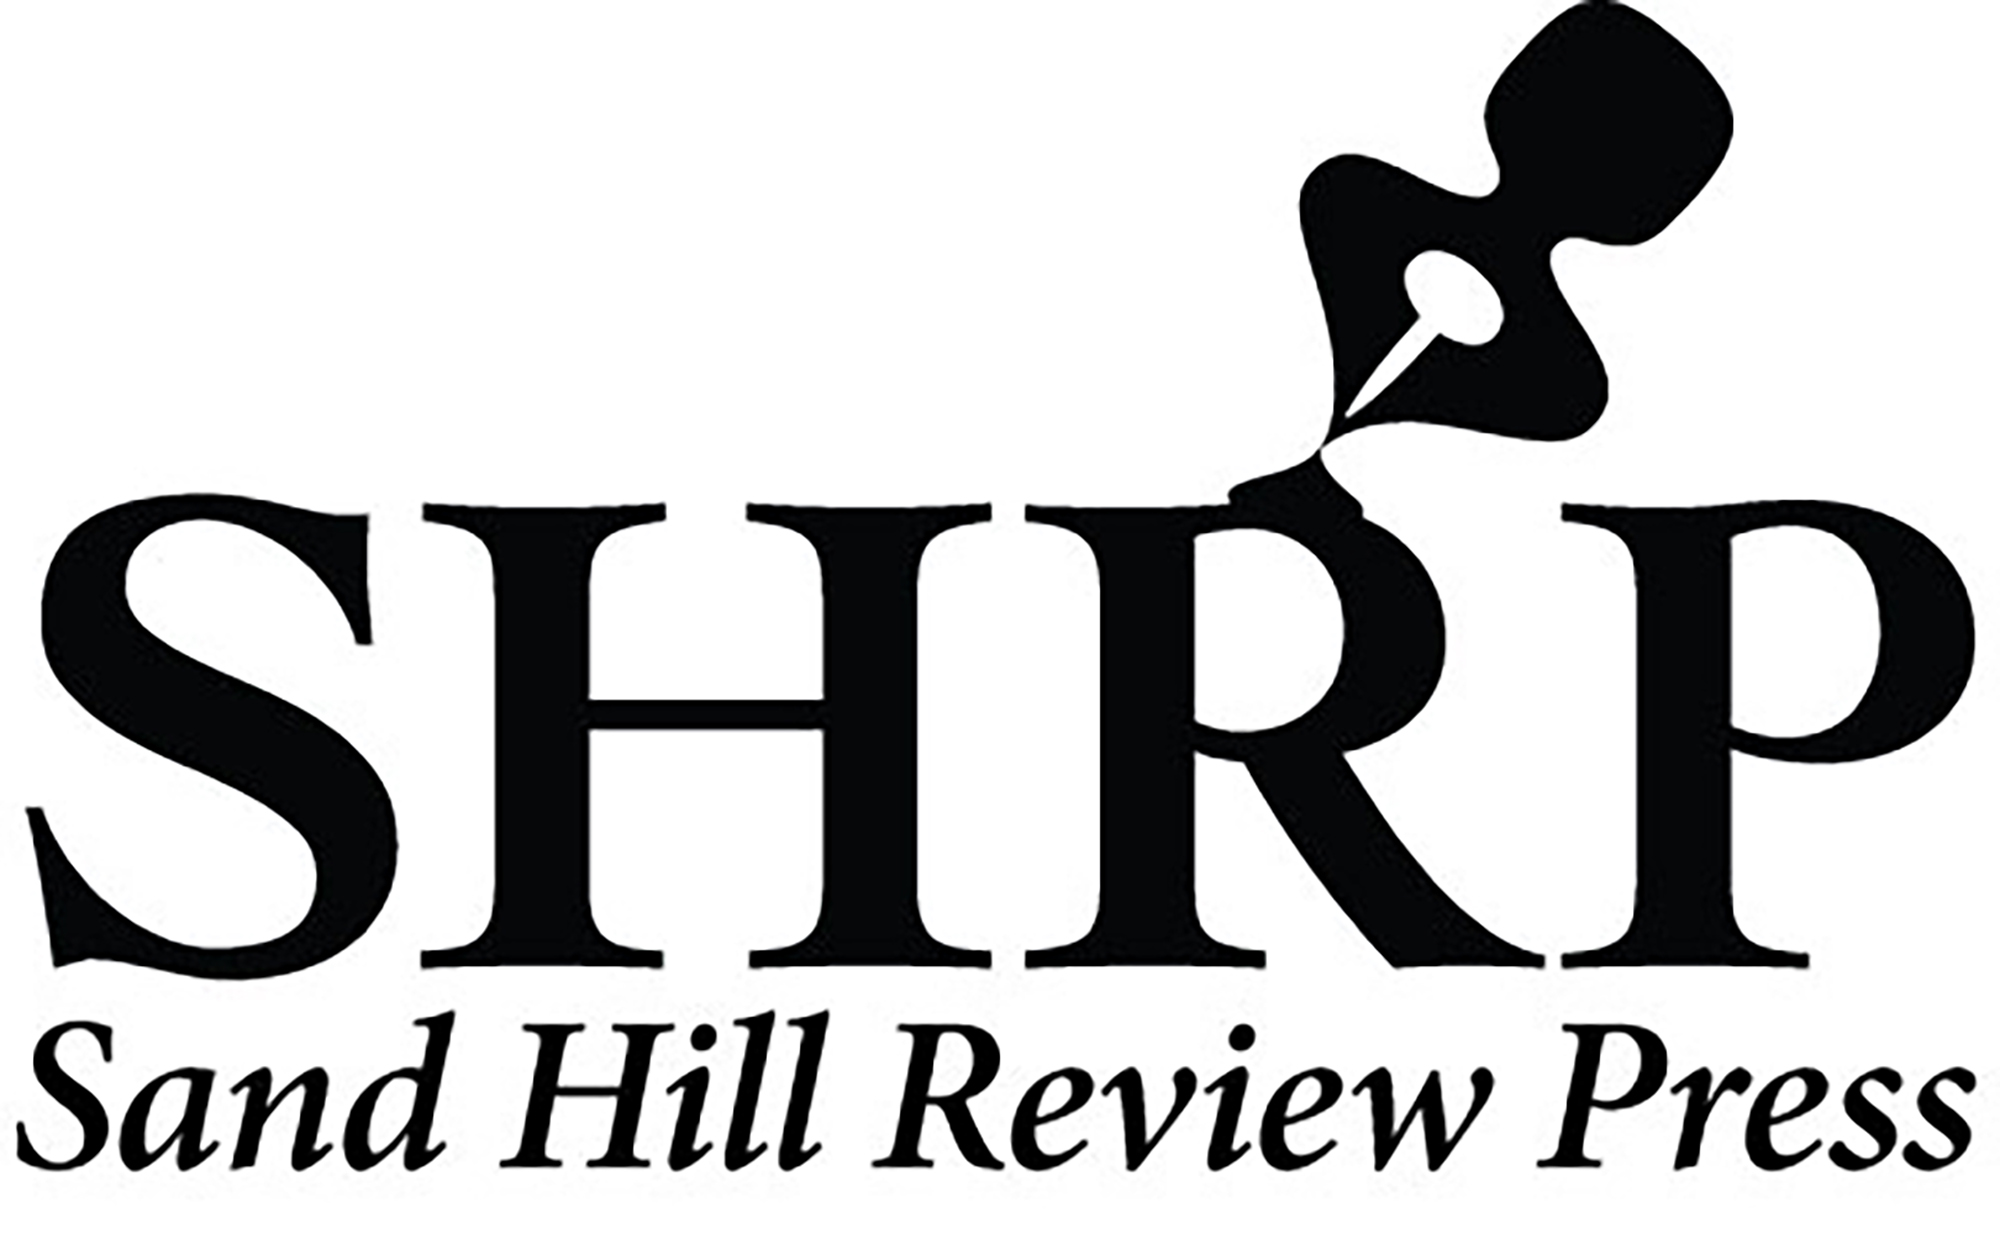 Sand Hill Review Press, LLC